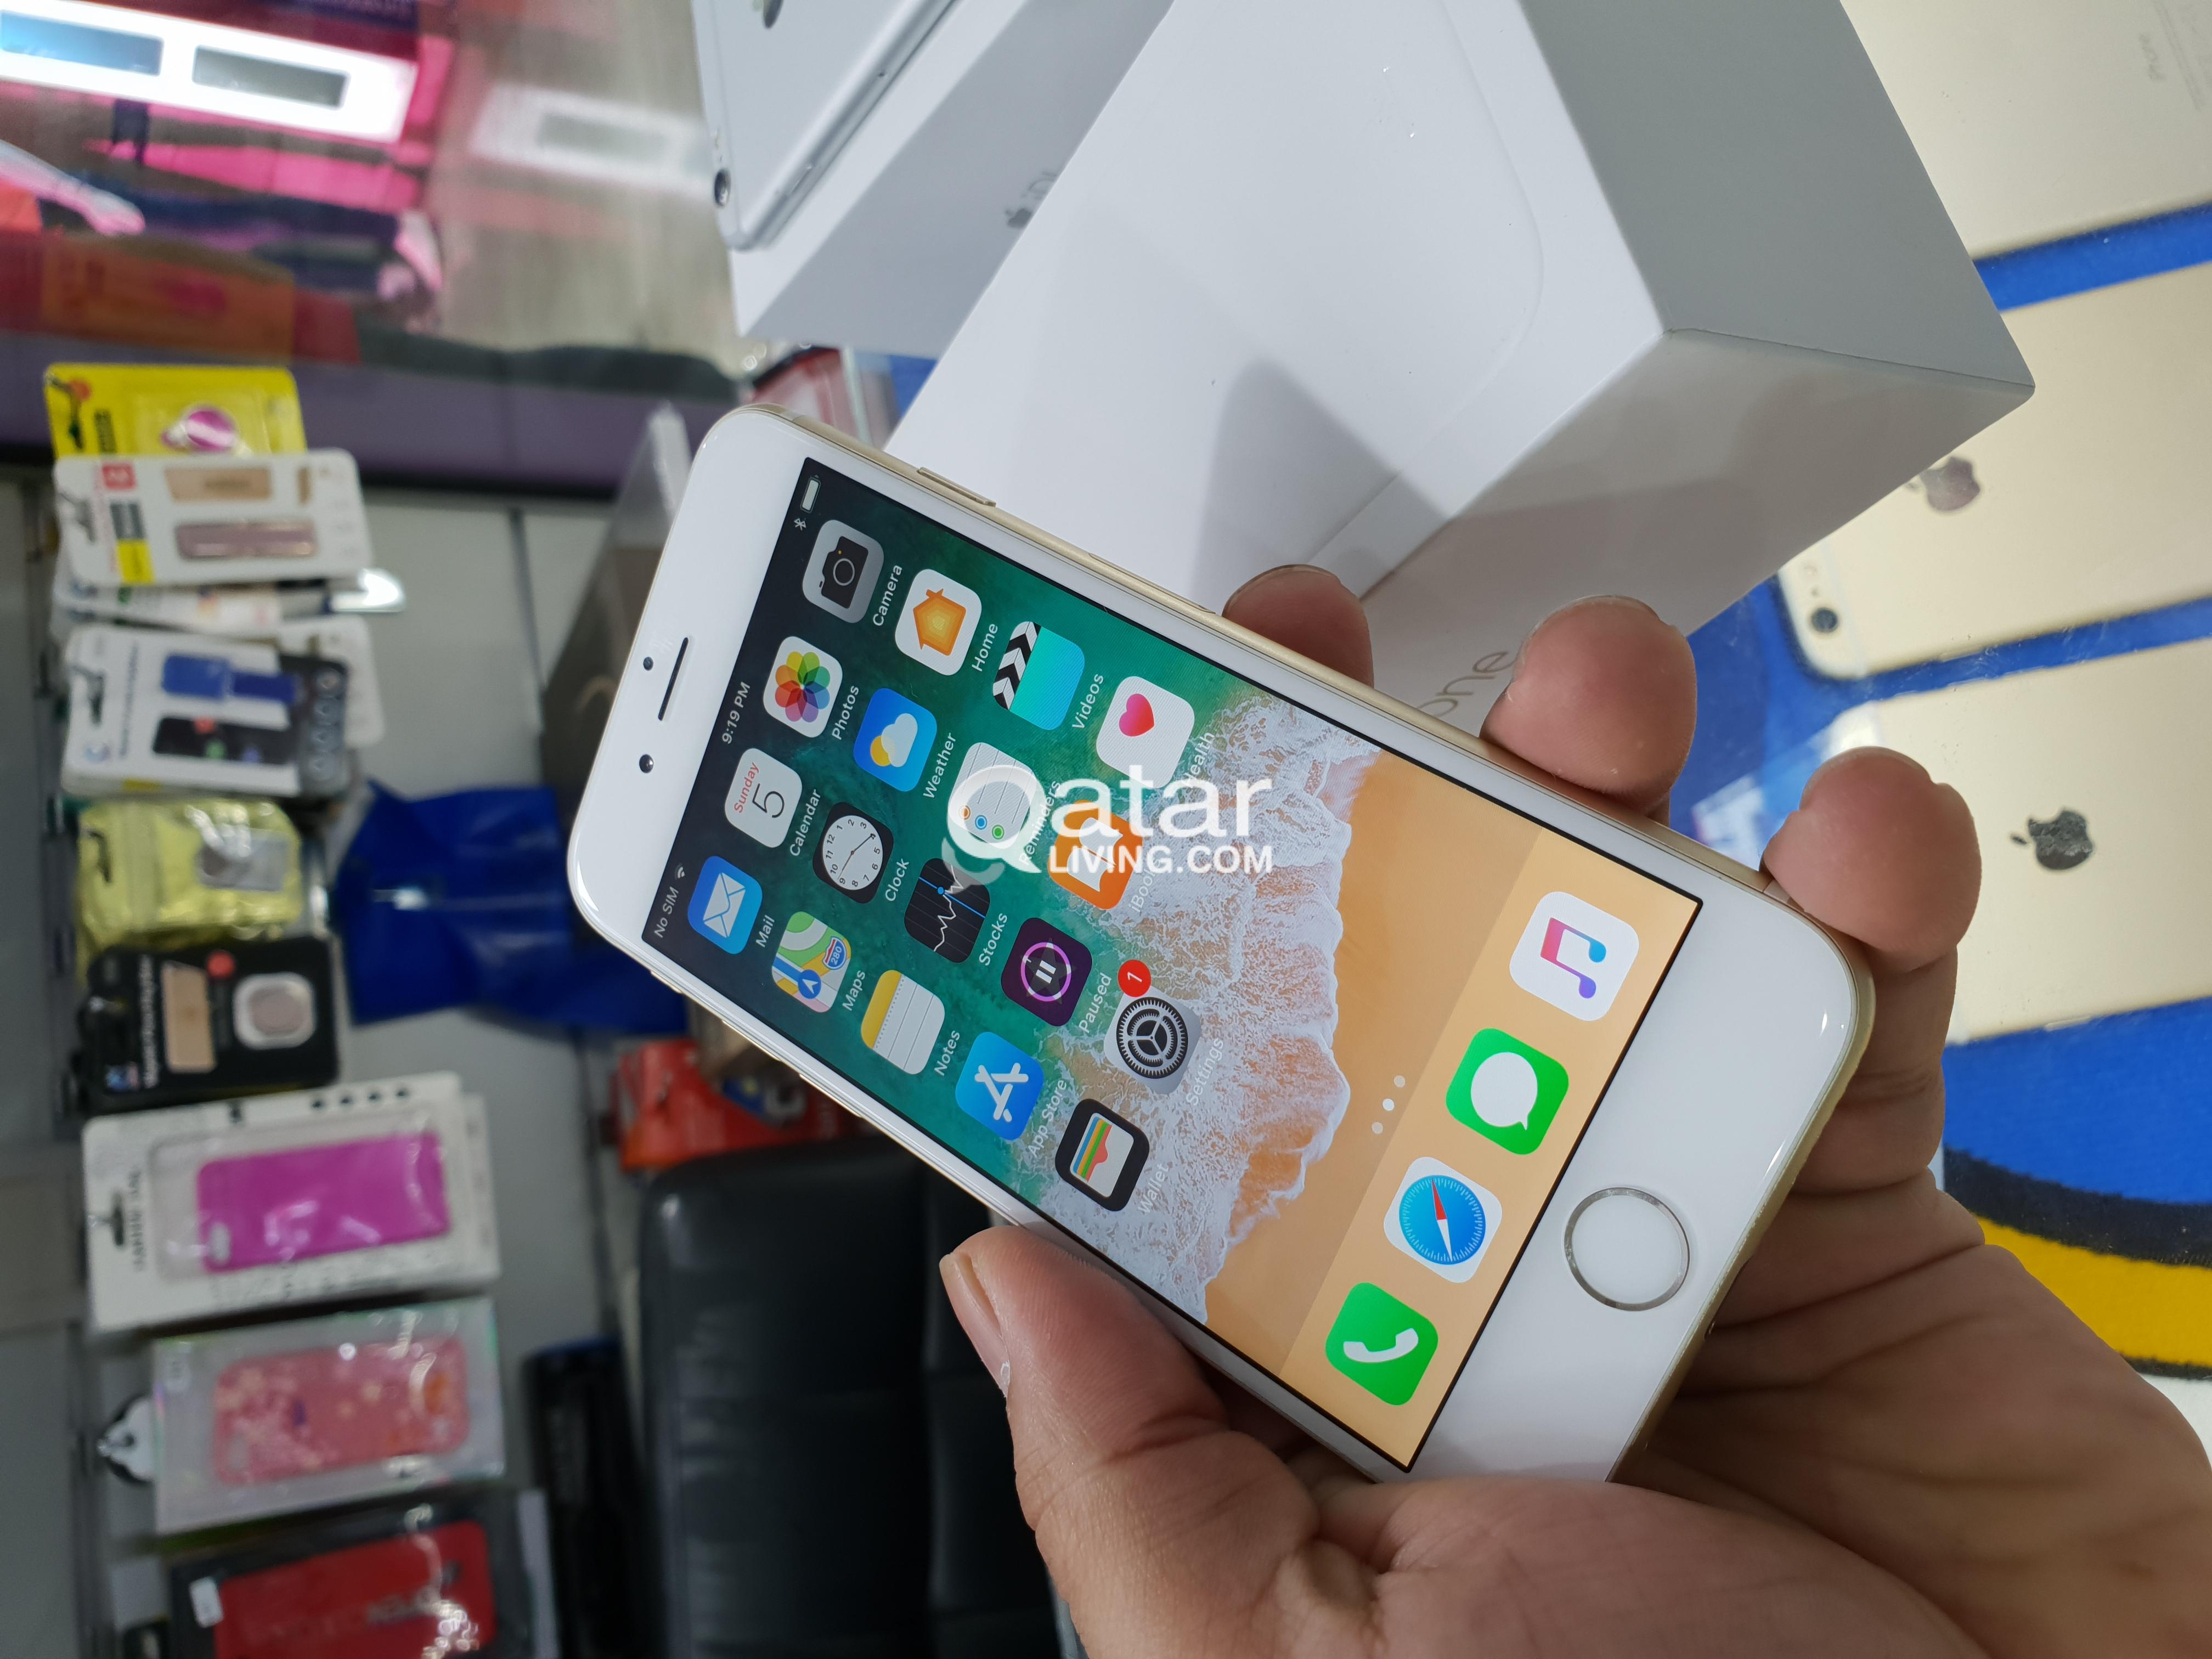 Apple Iphone 6 128gb Qatar Living 6s Information For Sale